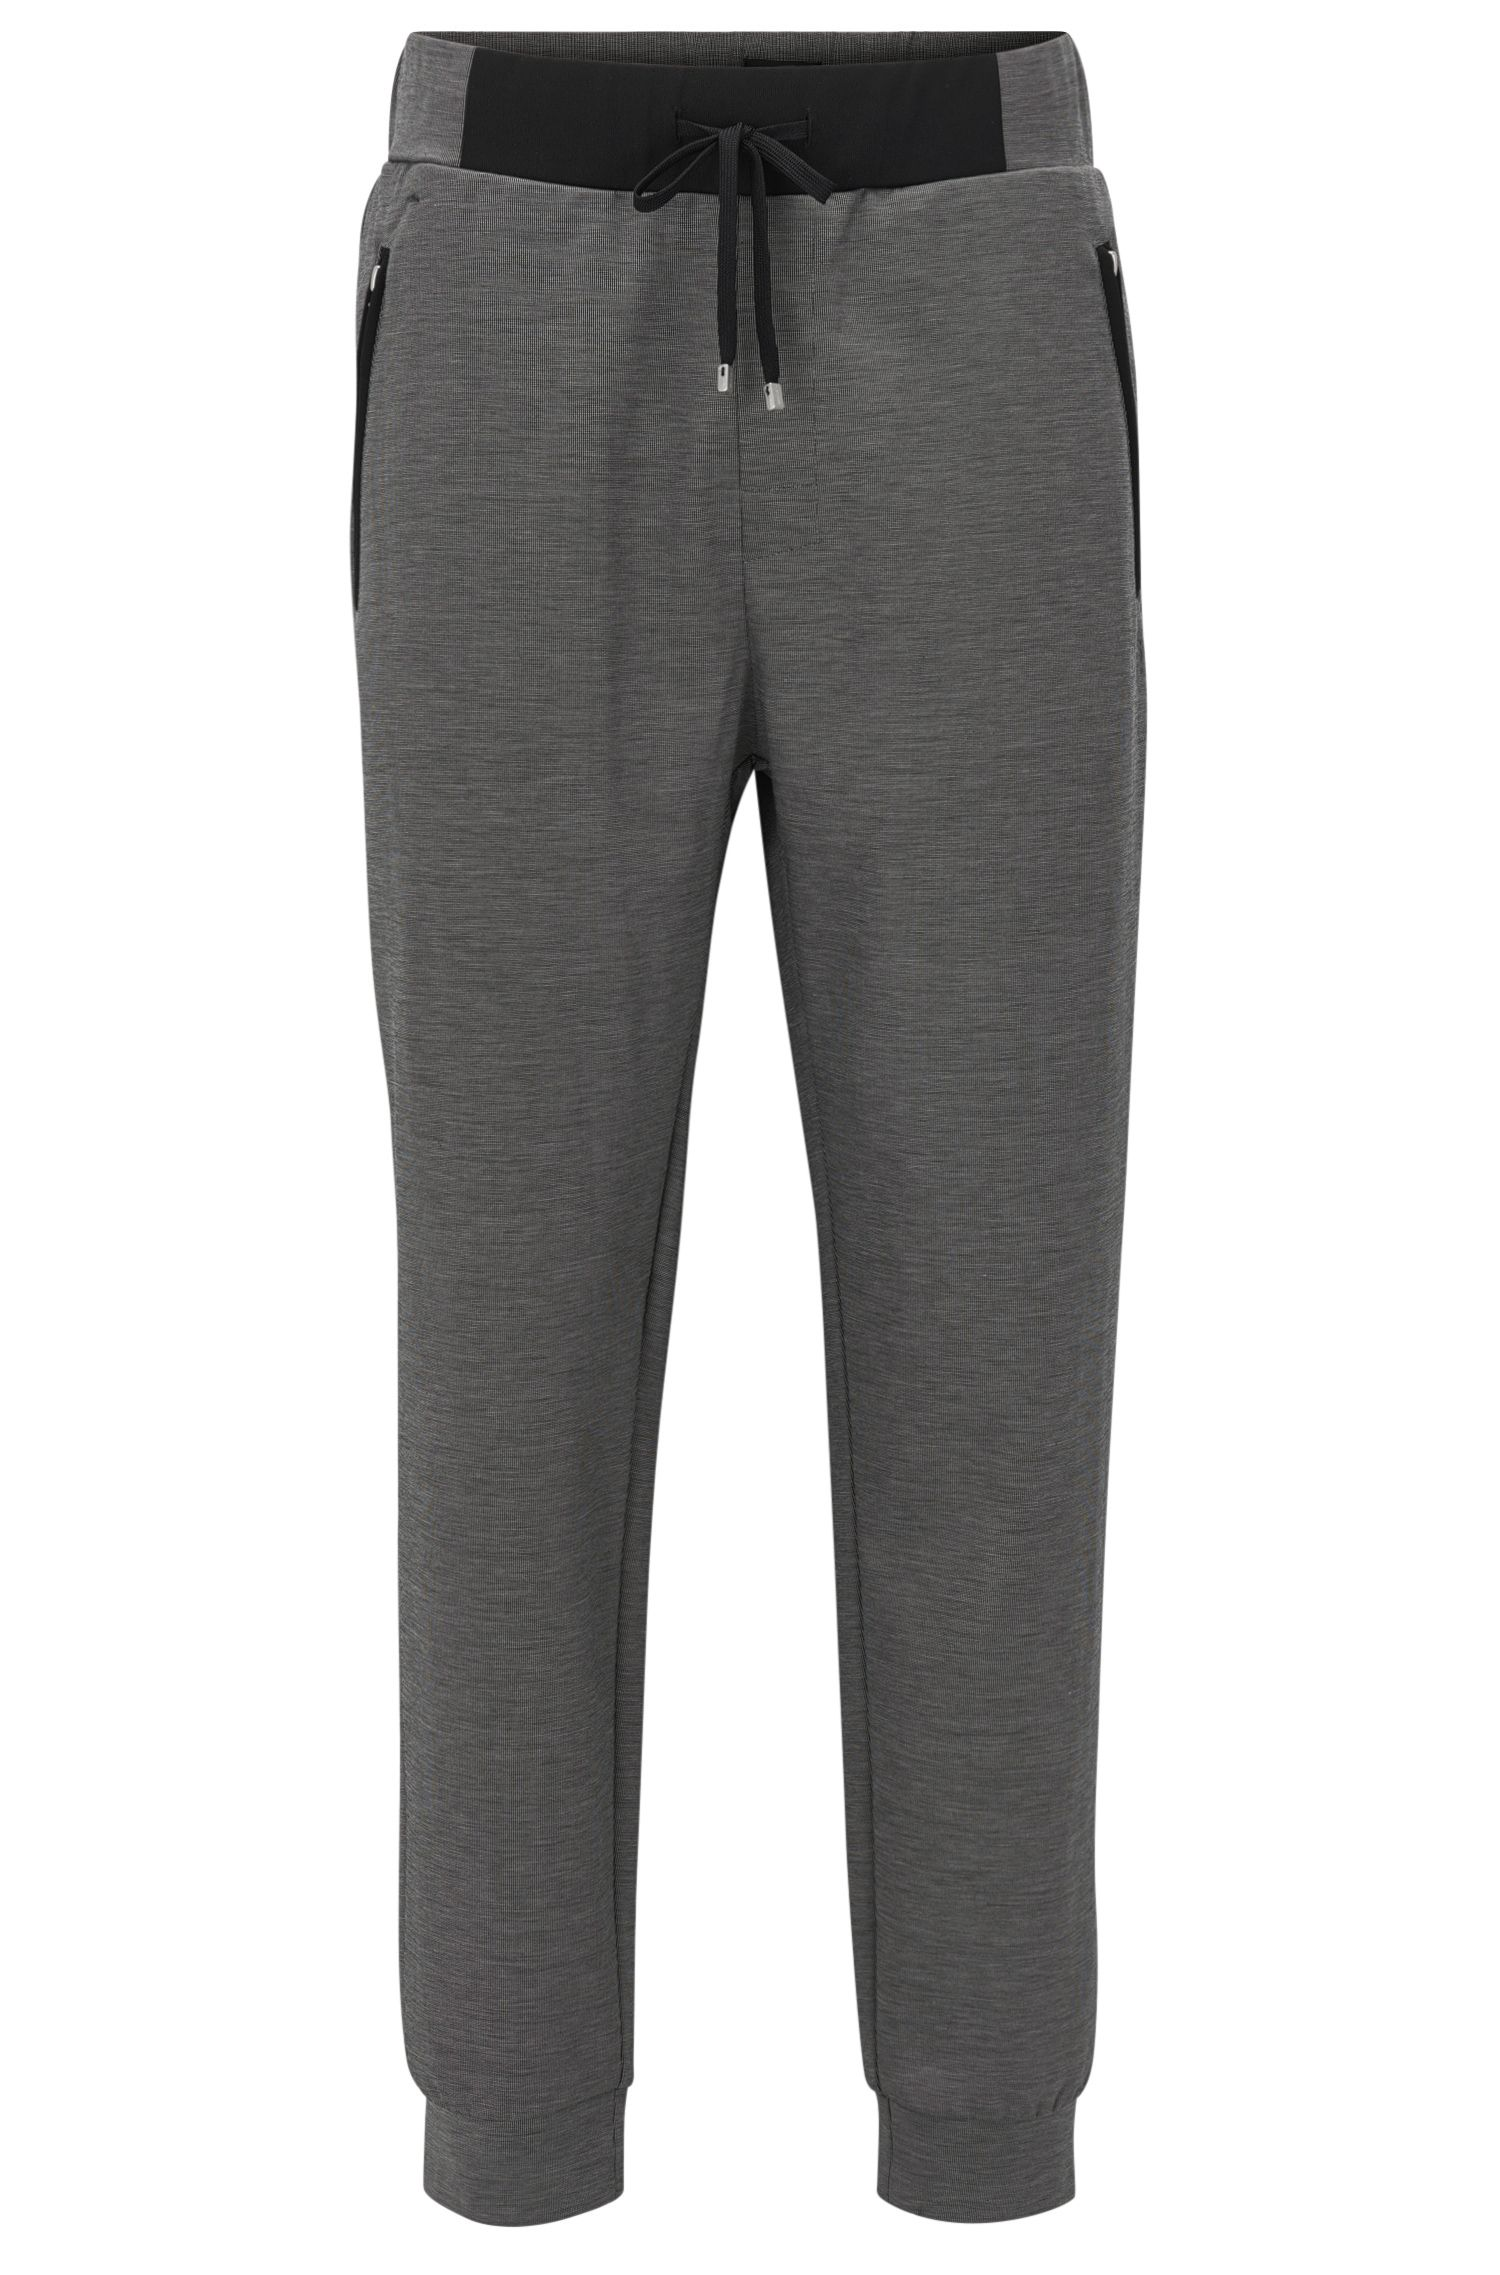 Jersey Lounge Pants | Long Pant Cuffs